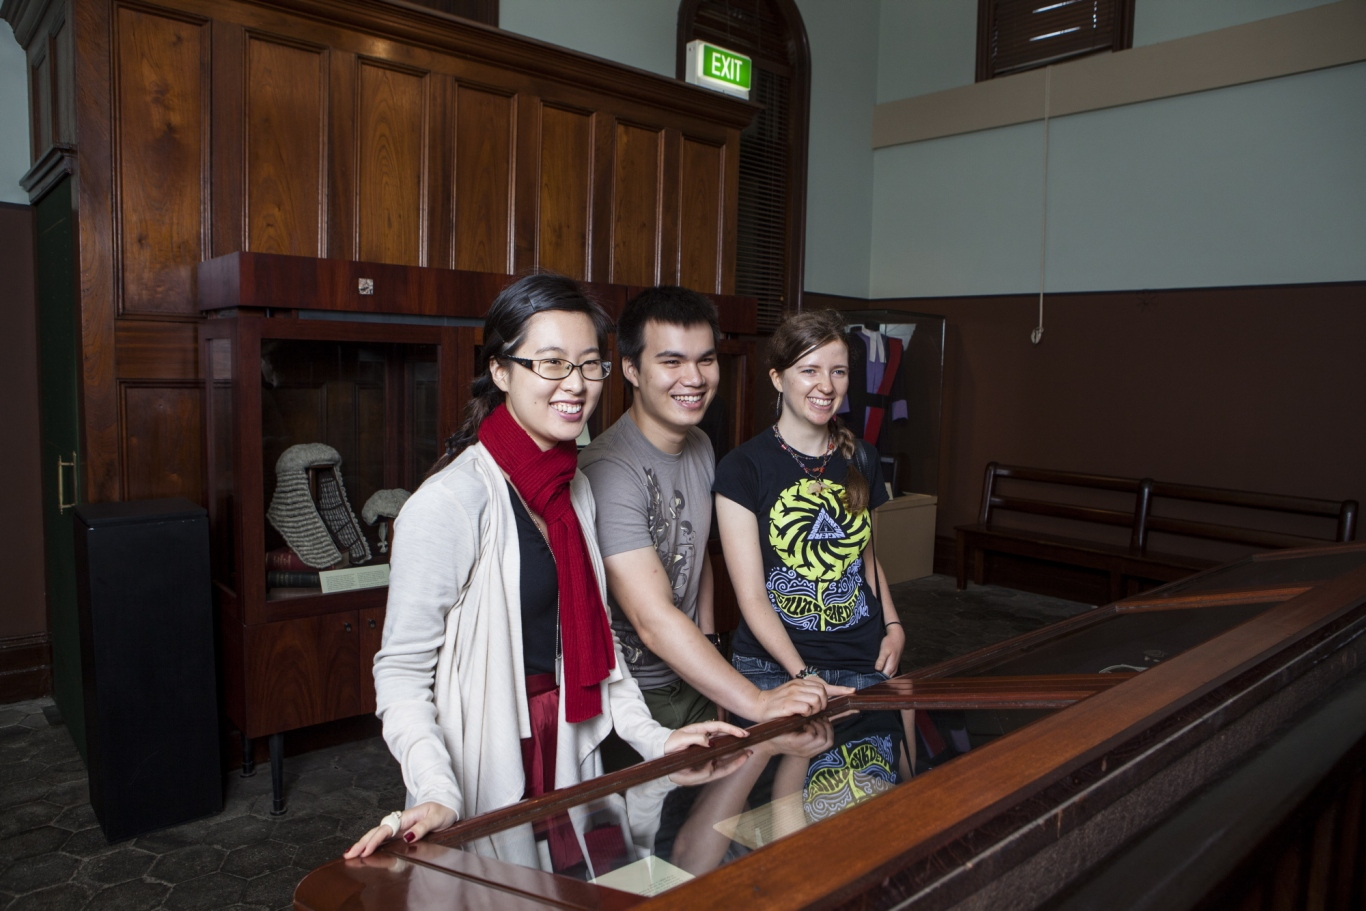 Three young people in courtroom setting.